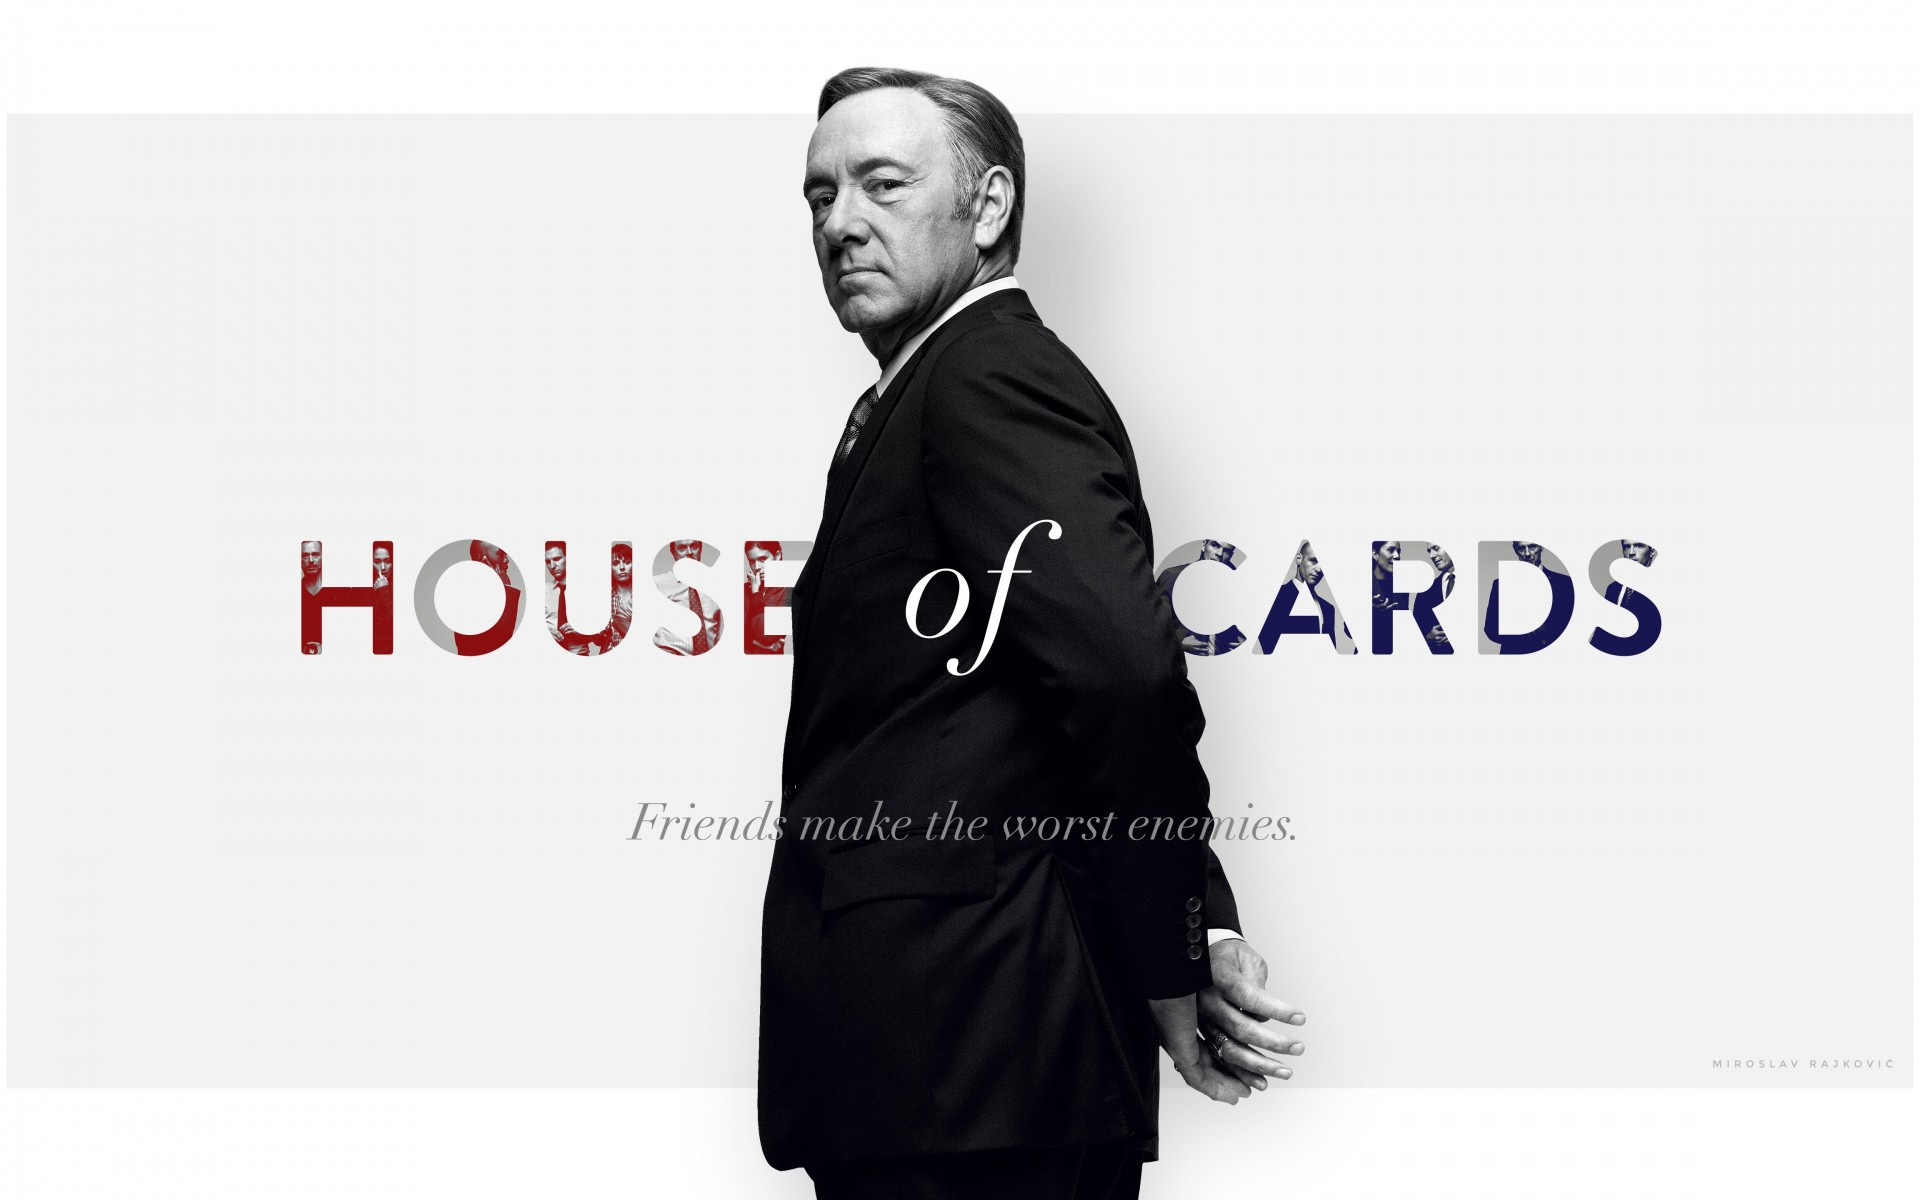 Frank Underwood - House of Cards Wallpaper for Desktop 1920x1200